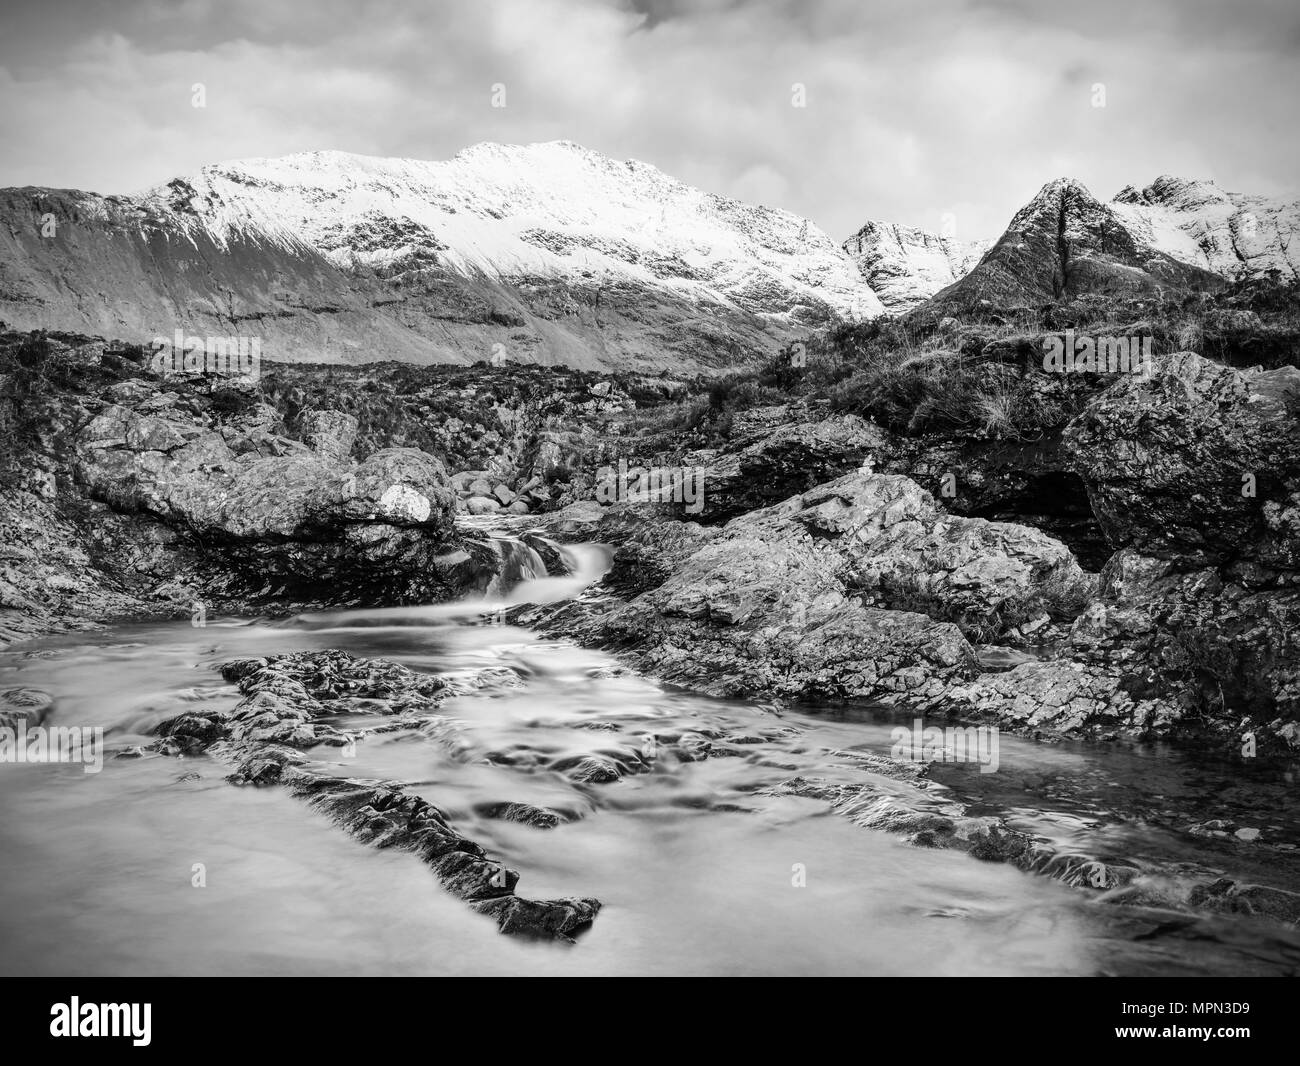 Multiple waterfalls on River Brittle  with many cold swimmable pools. Black and white photography - Stock Image